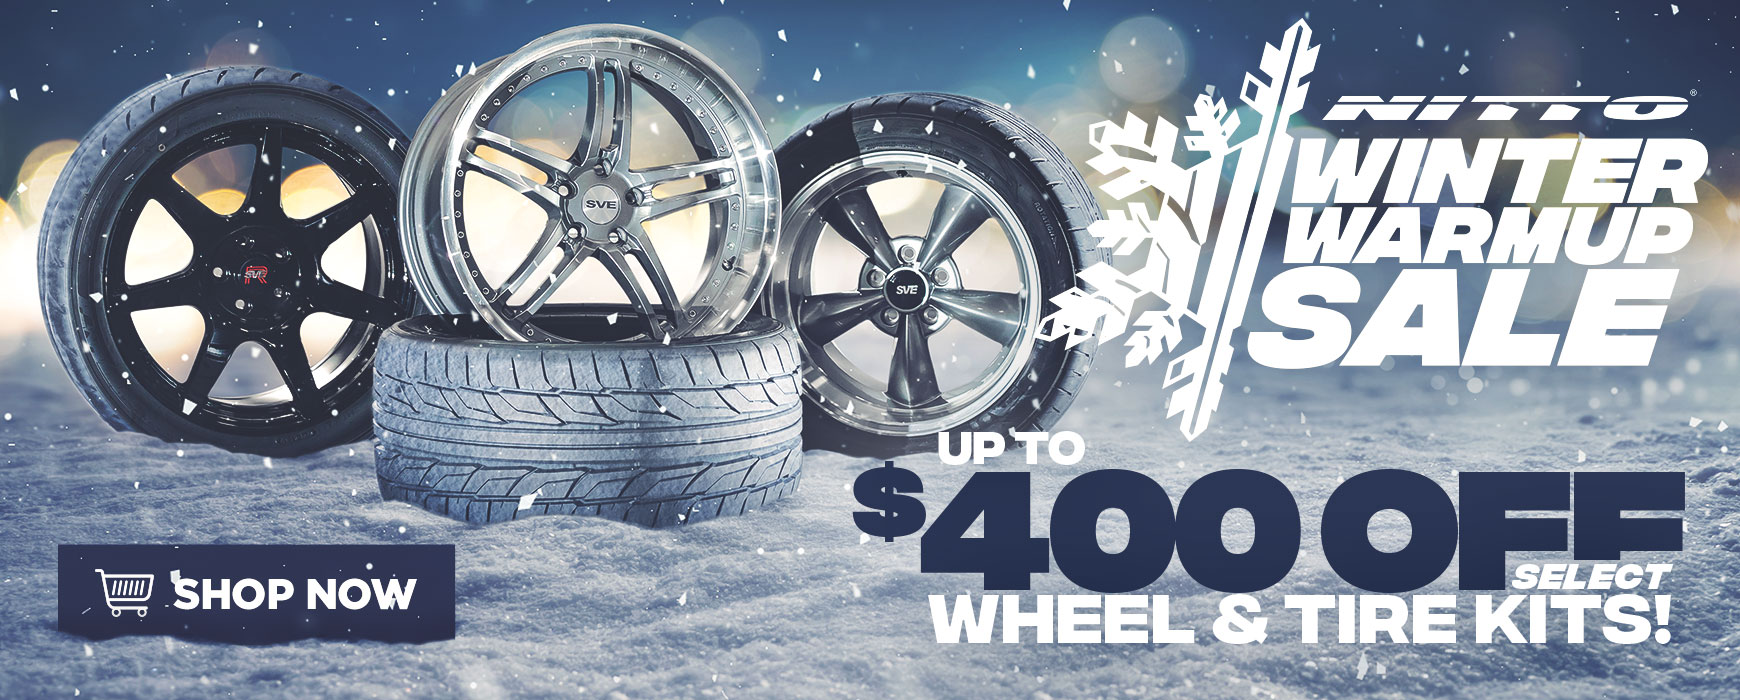 Nitto Winter Warmup Sale!